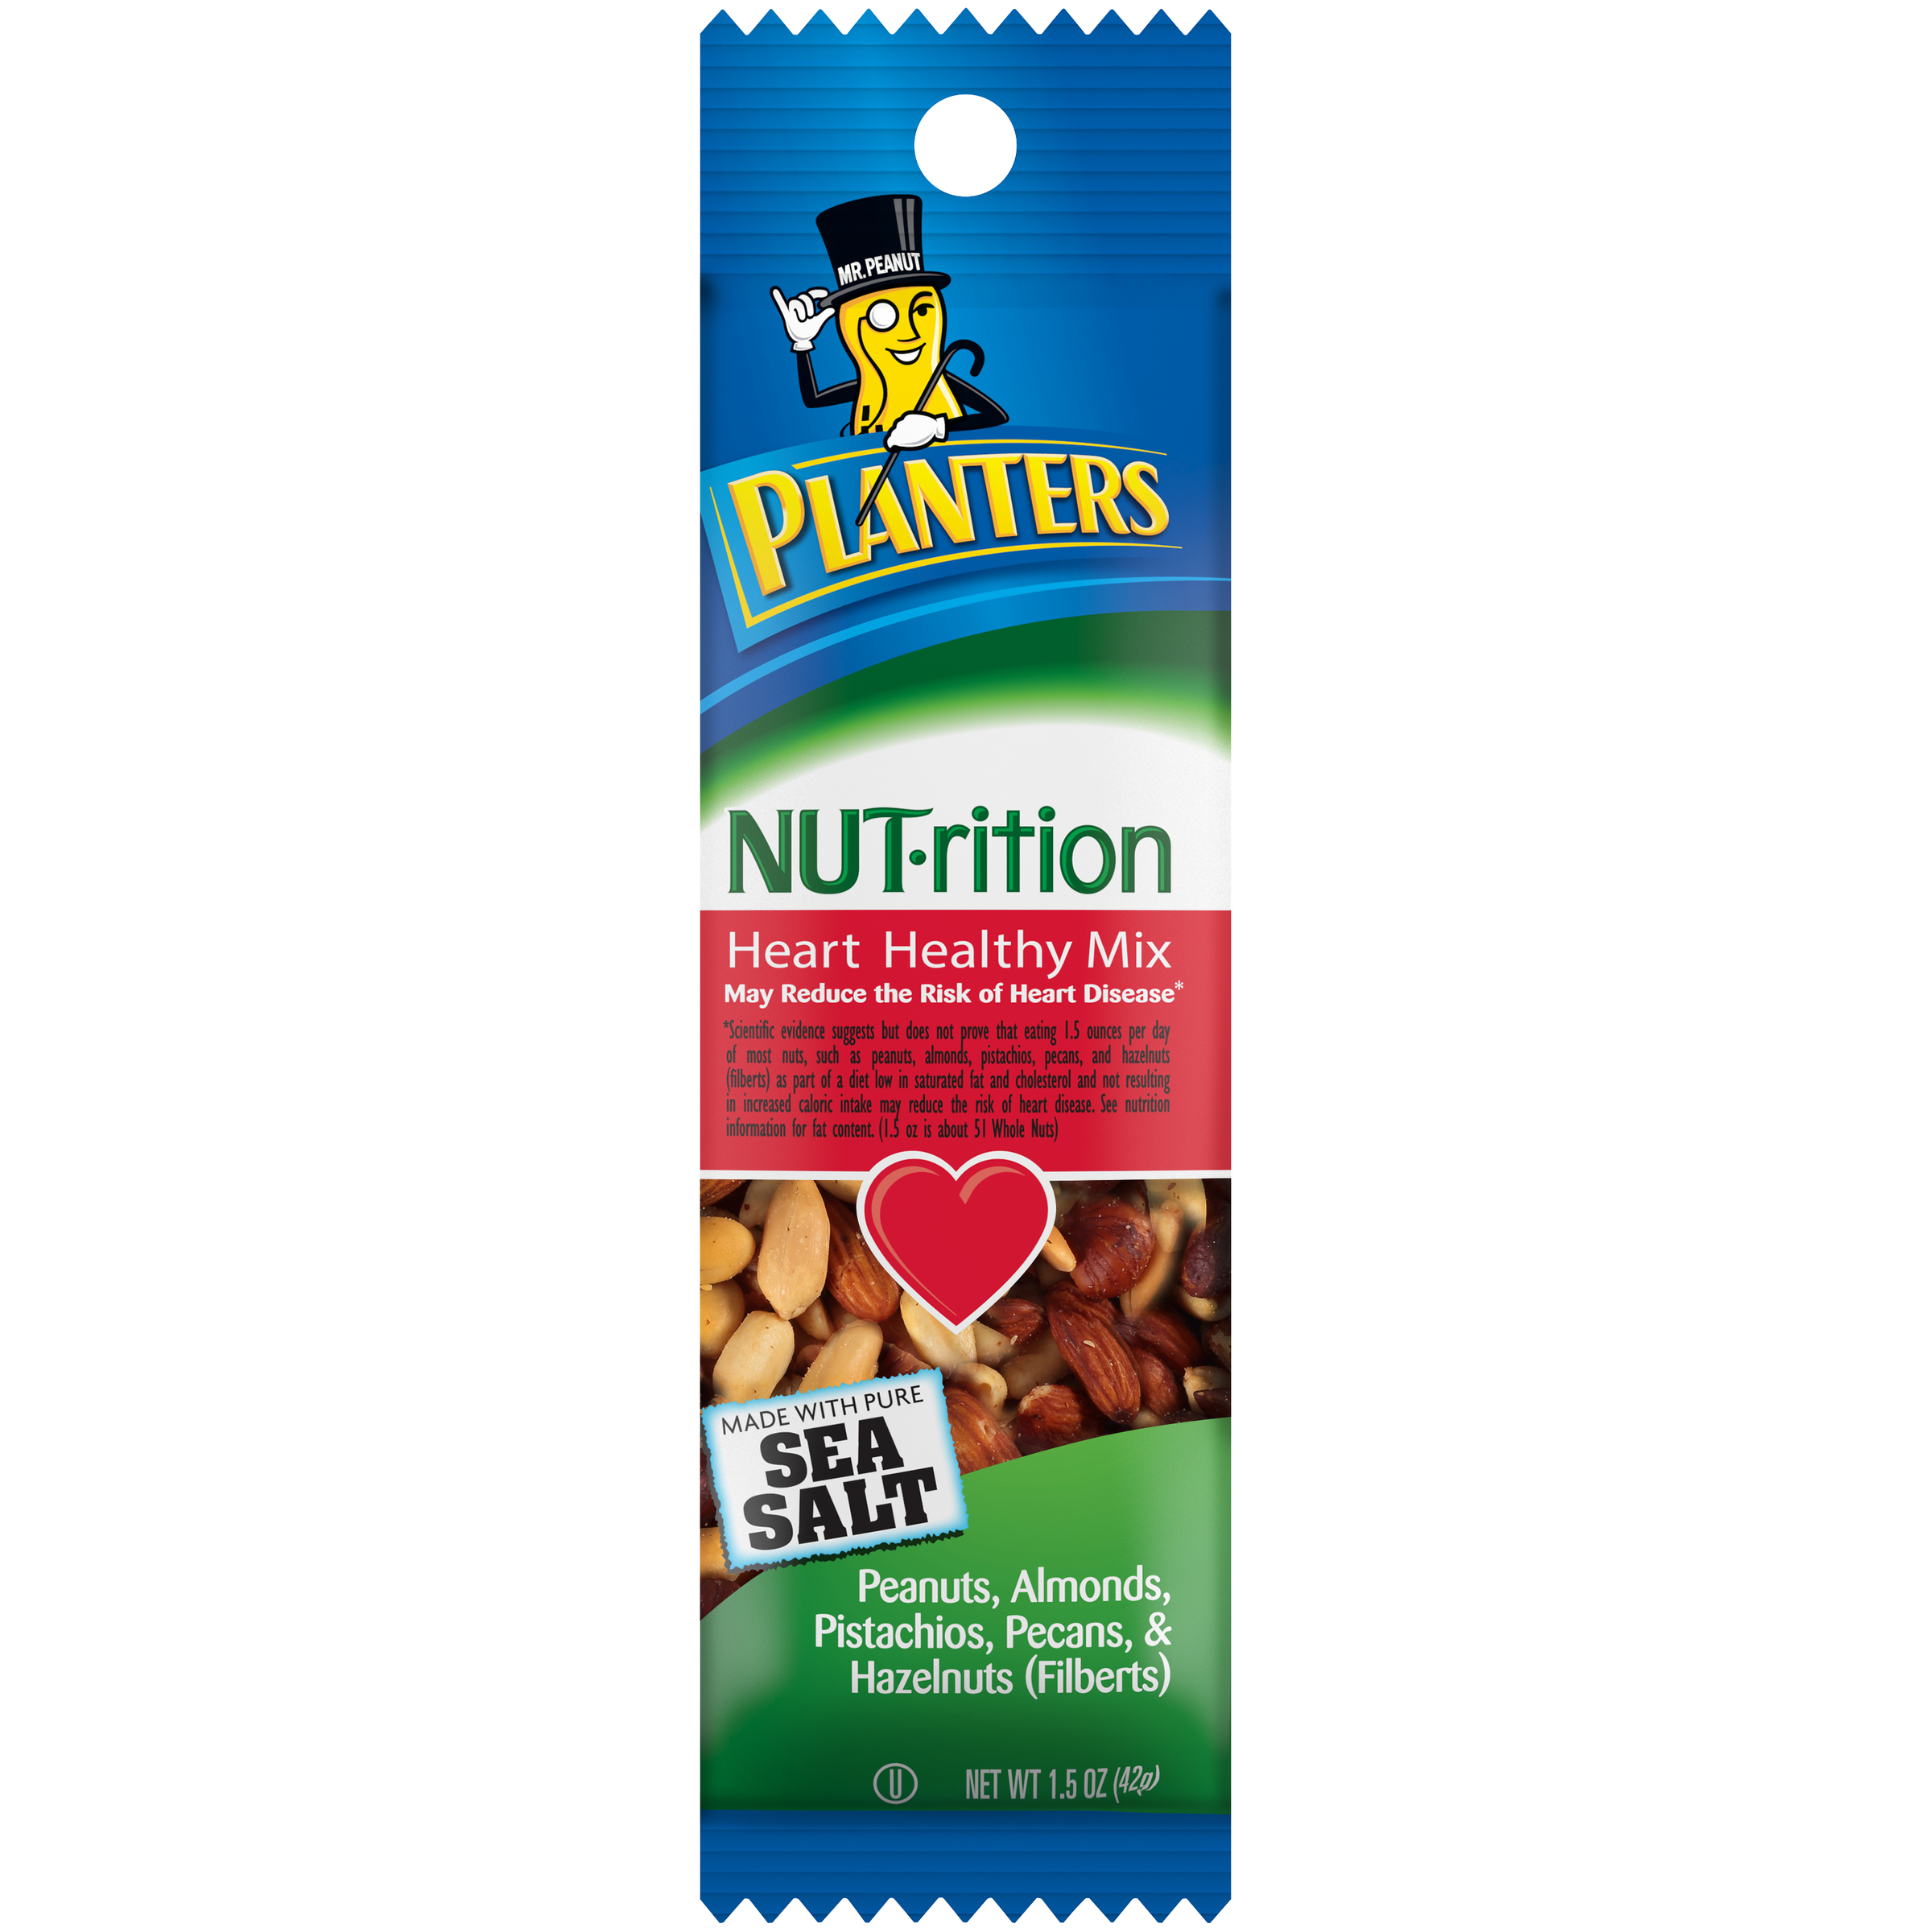 PLANTERS NUT-rition Heart Healthy Mix, 1.5 oz. Bag (3/18 Packs) image